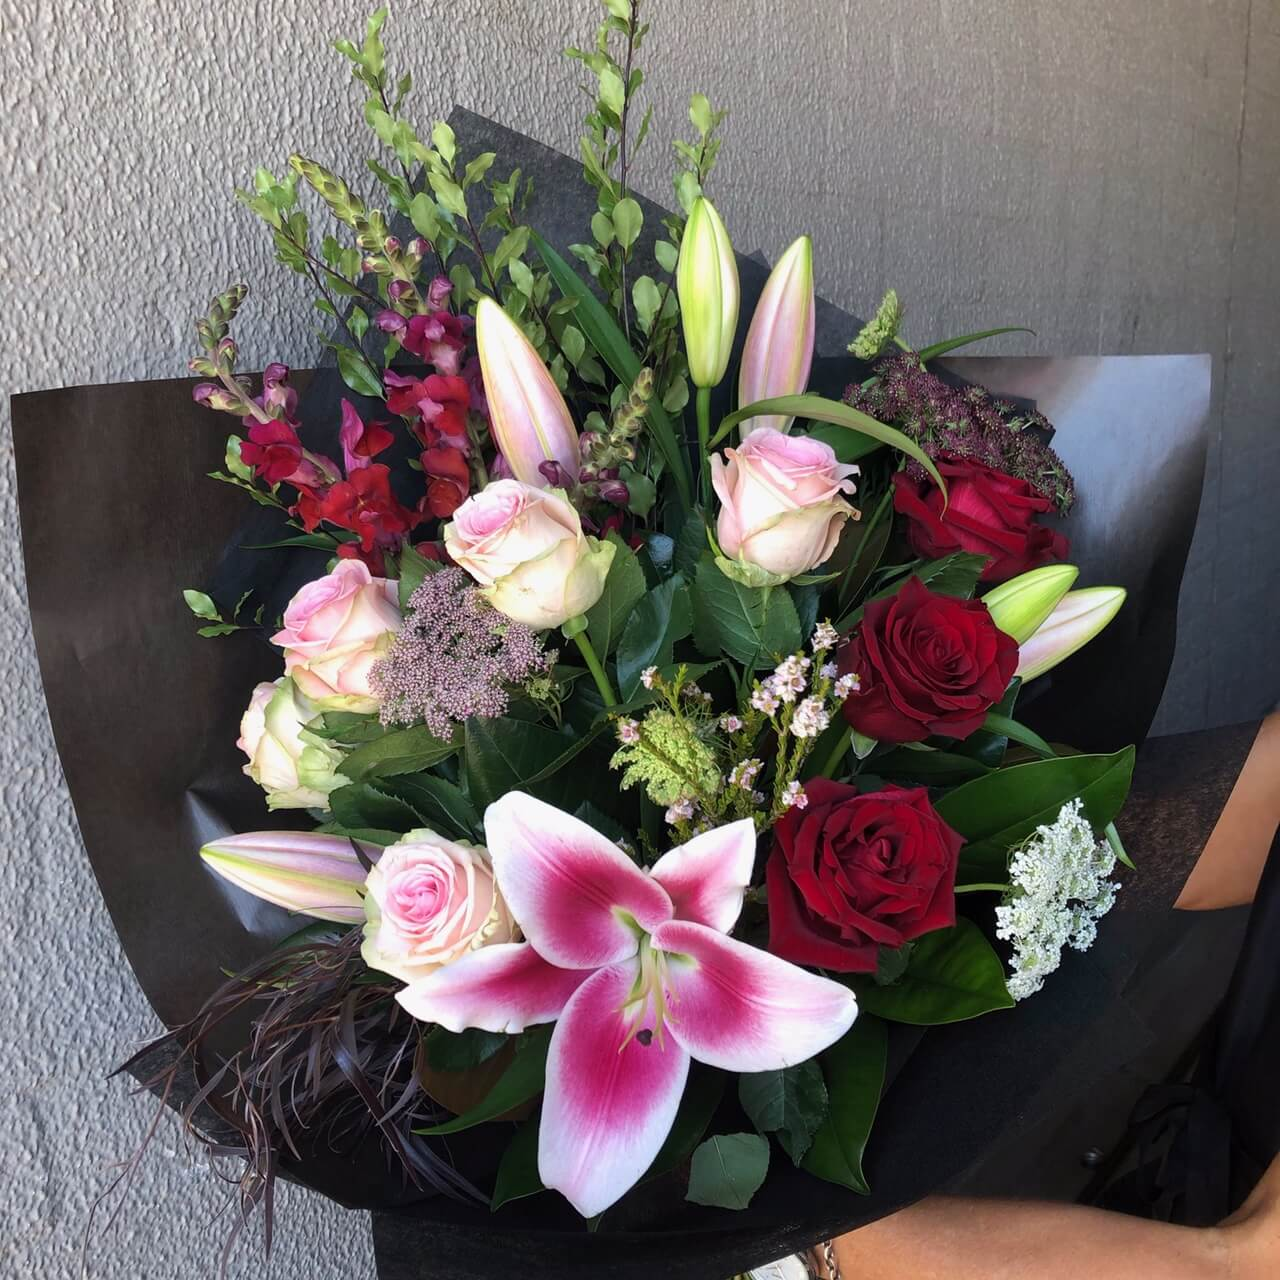 Valentines rose and bloom bouquet